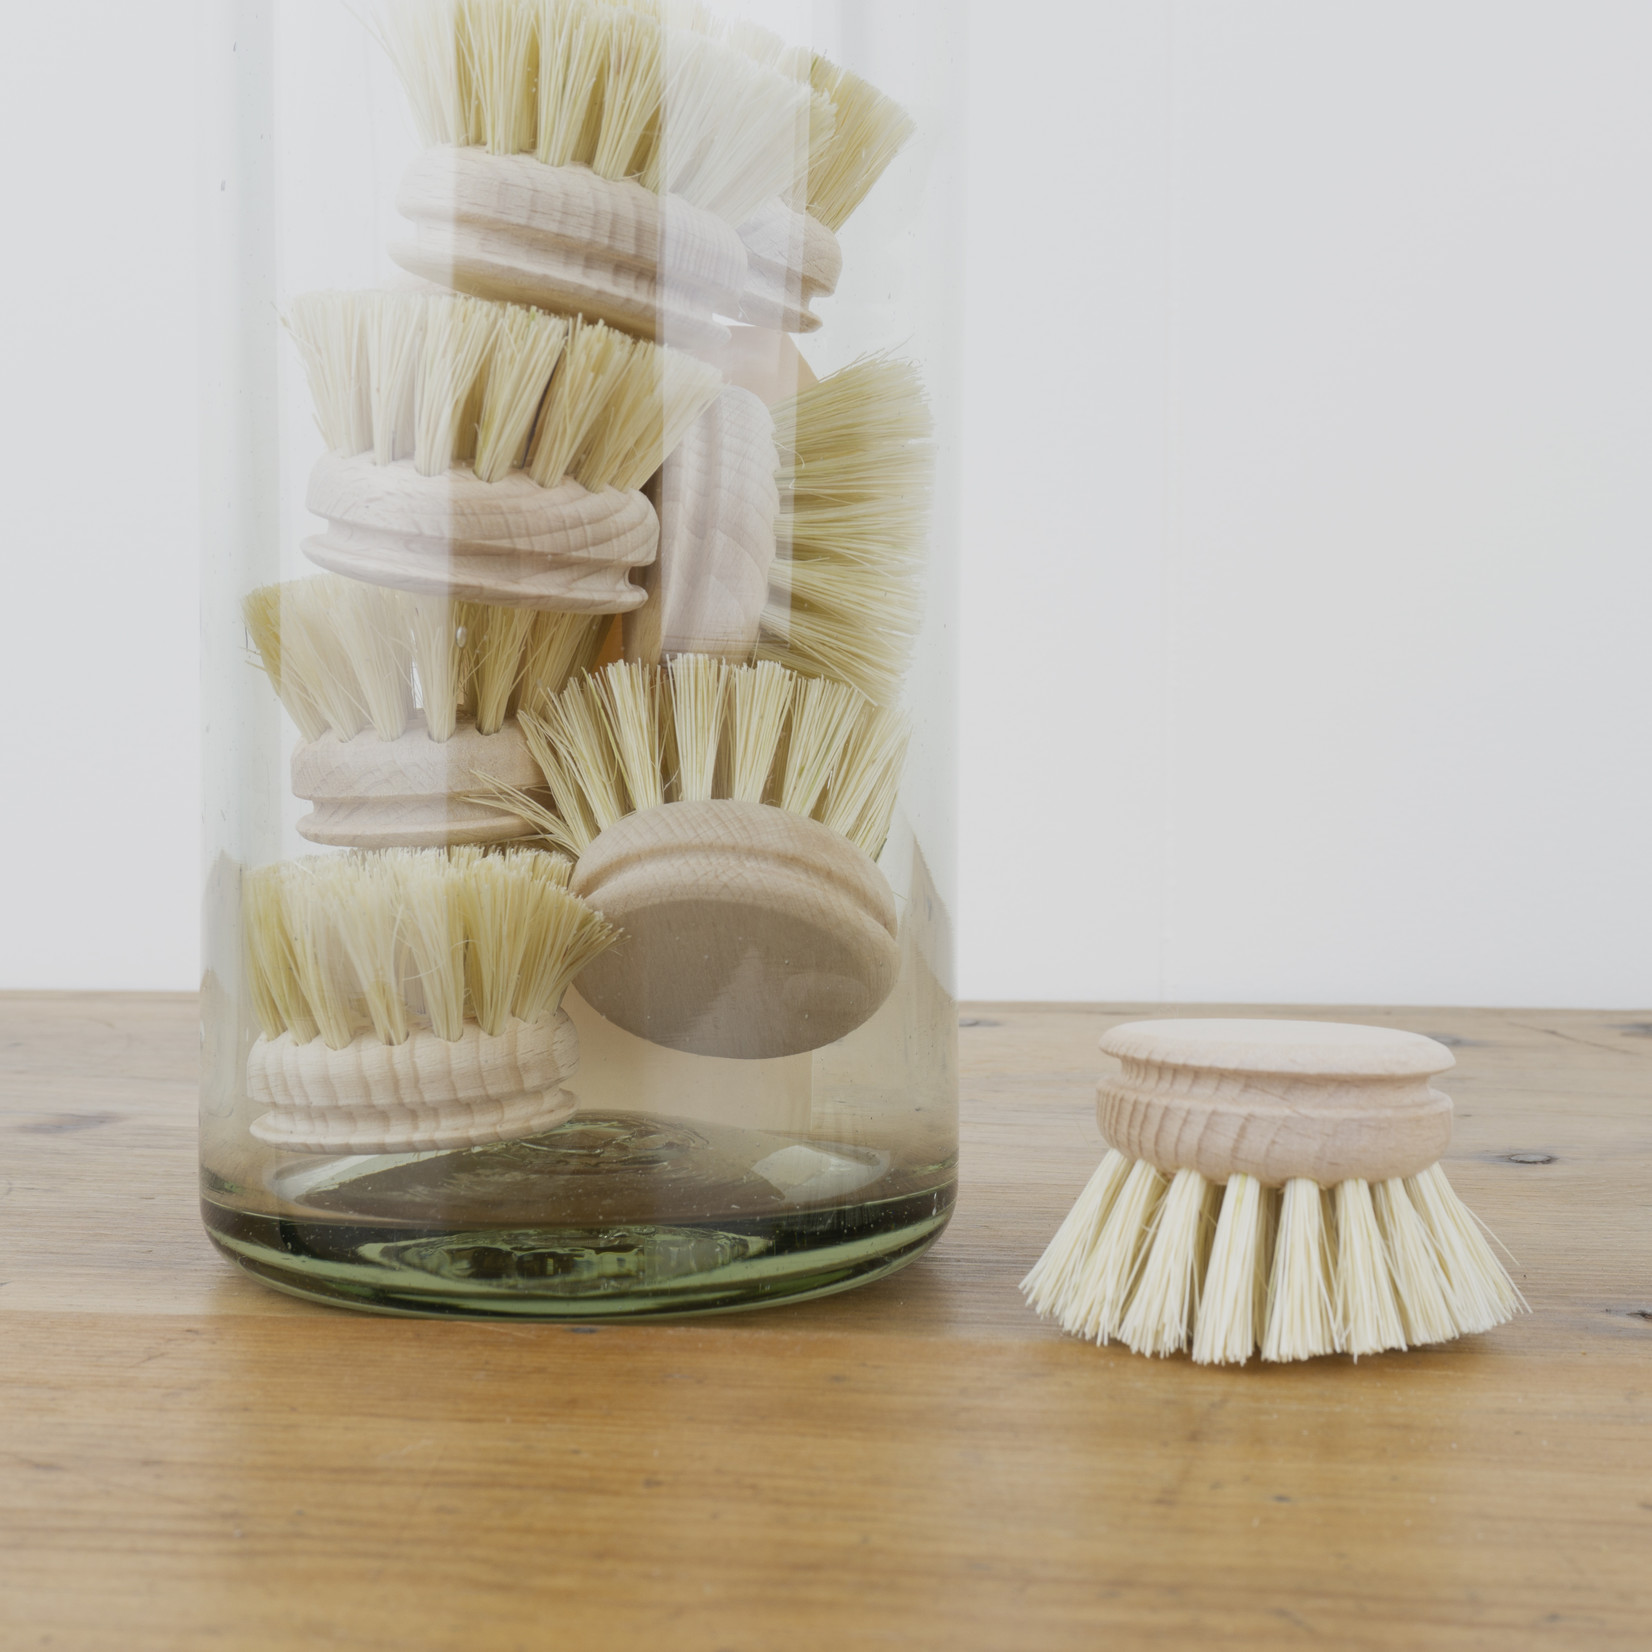 Round Replacement Bristles for Everyday Dishbrush